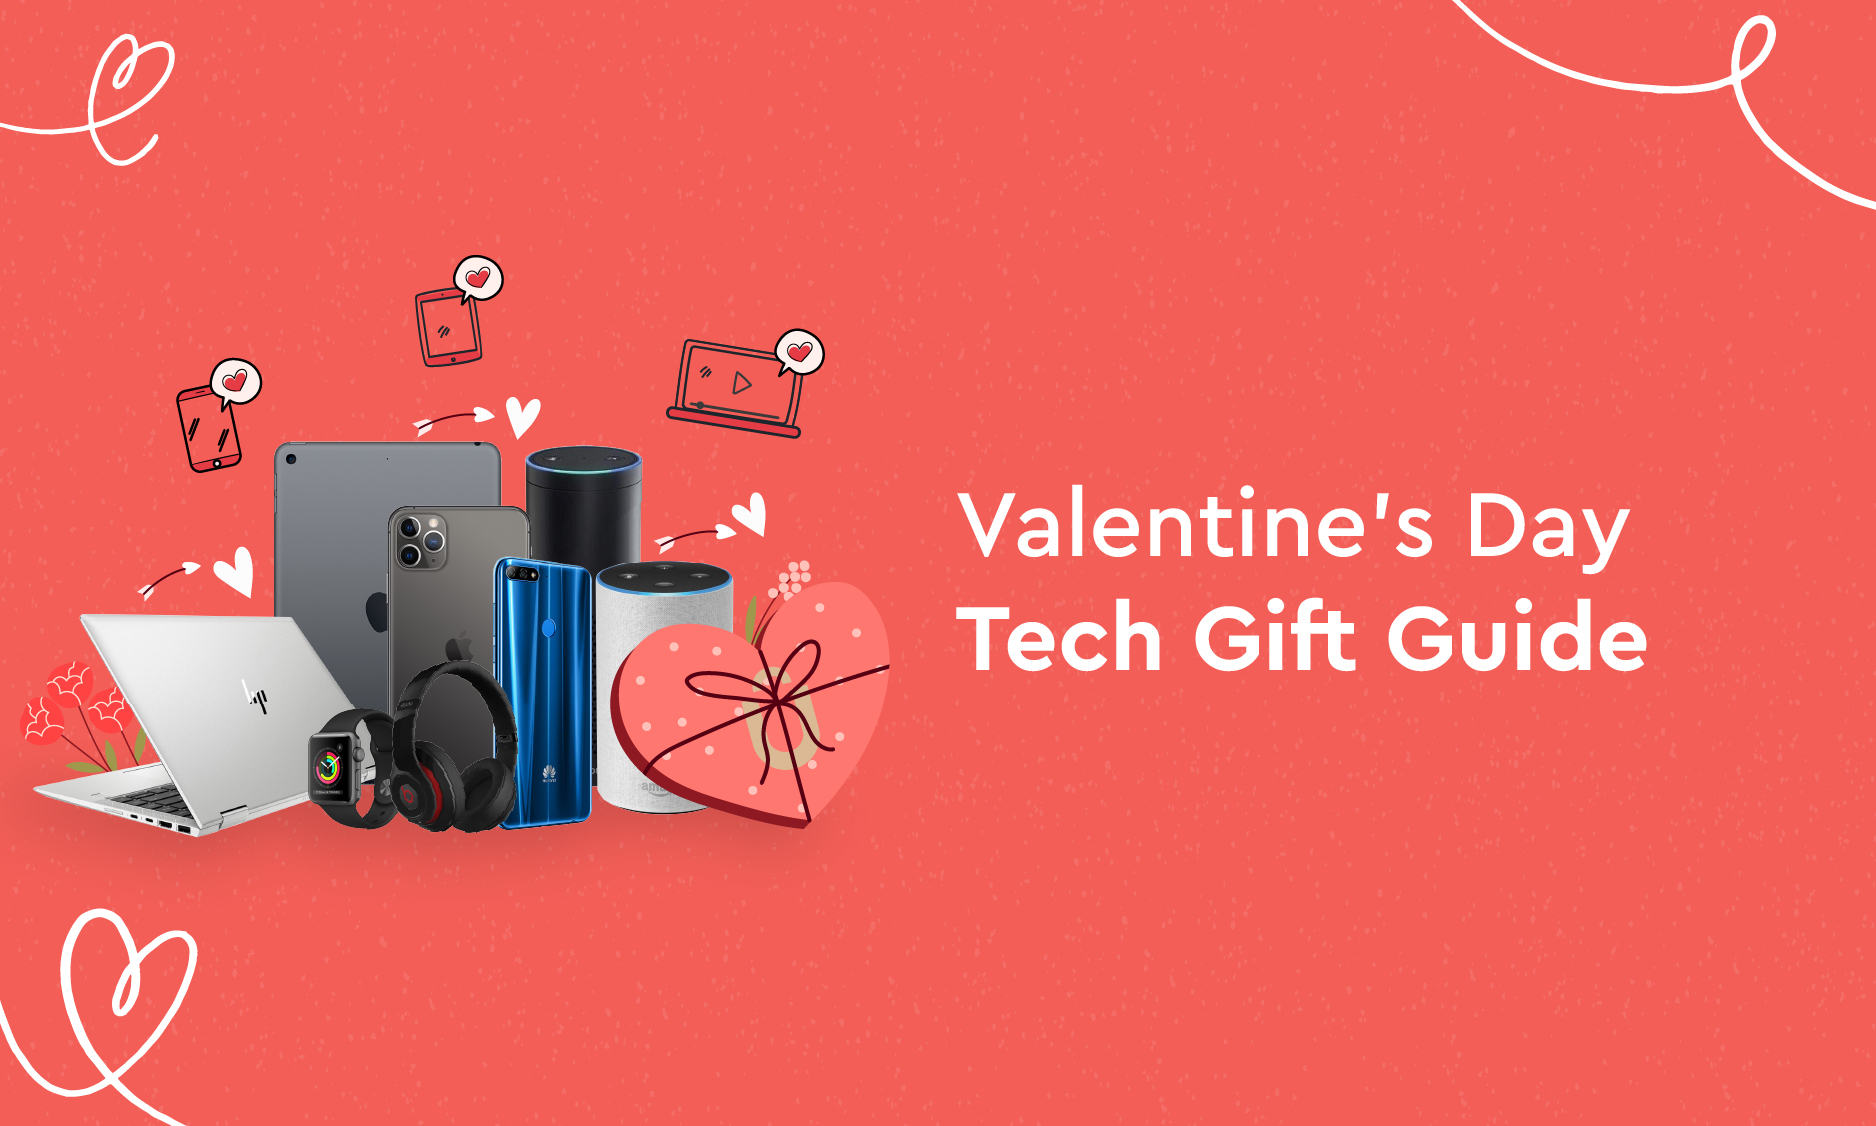 Valentine's Day Tech Gift Guide For Different Personalities